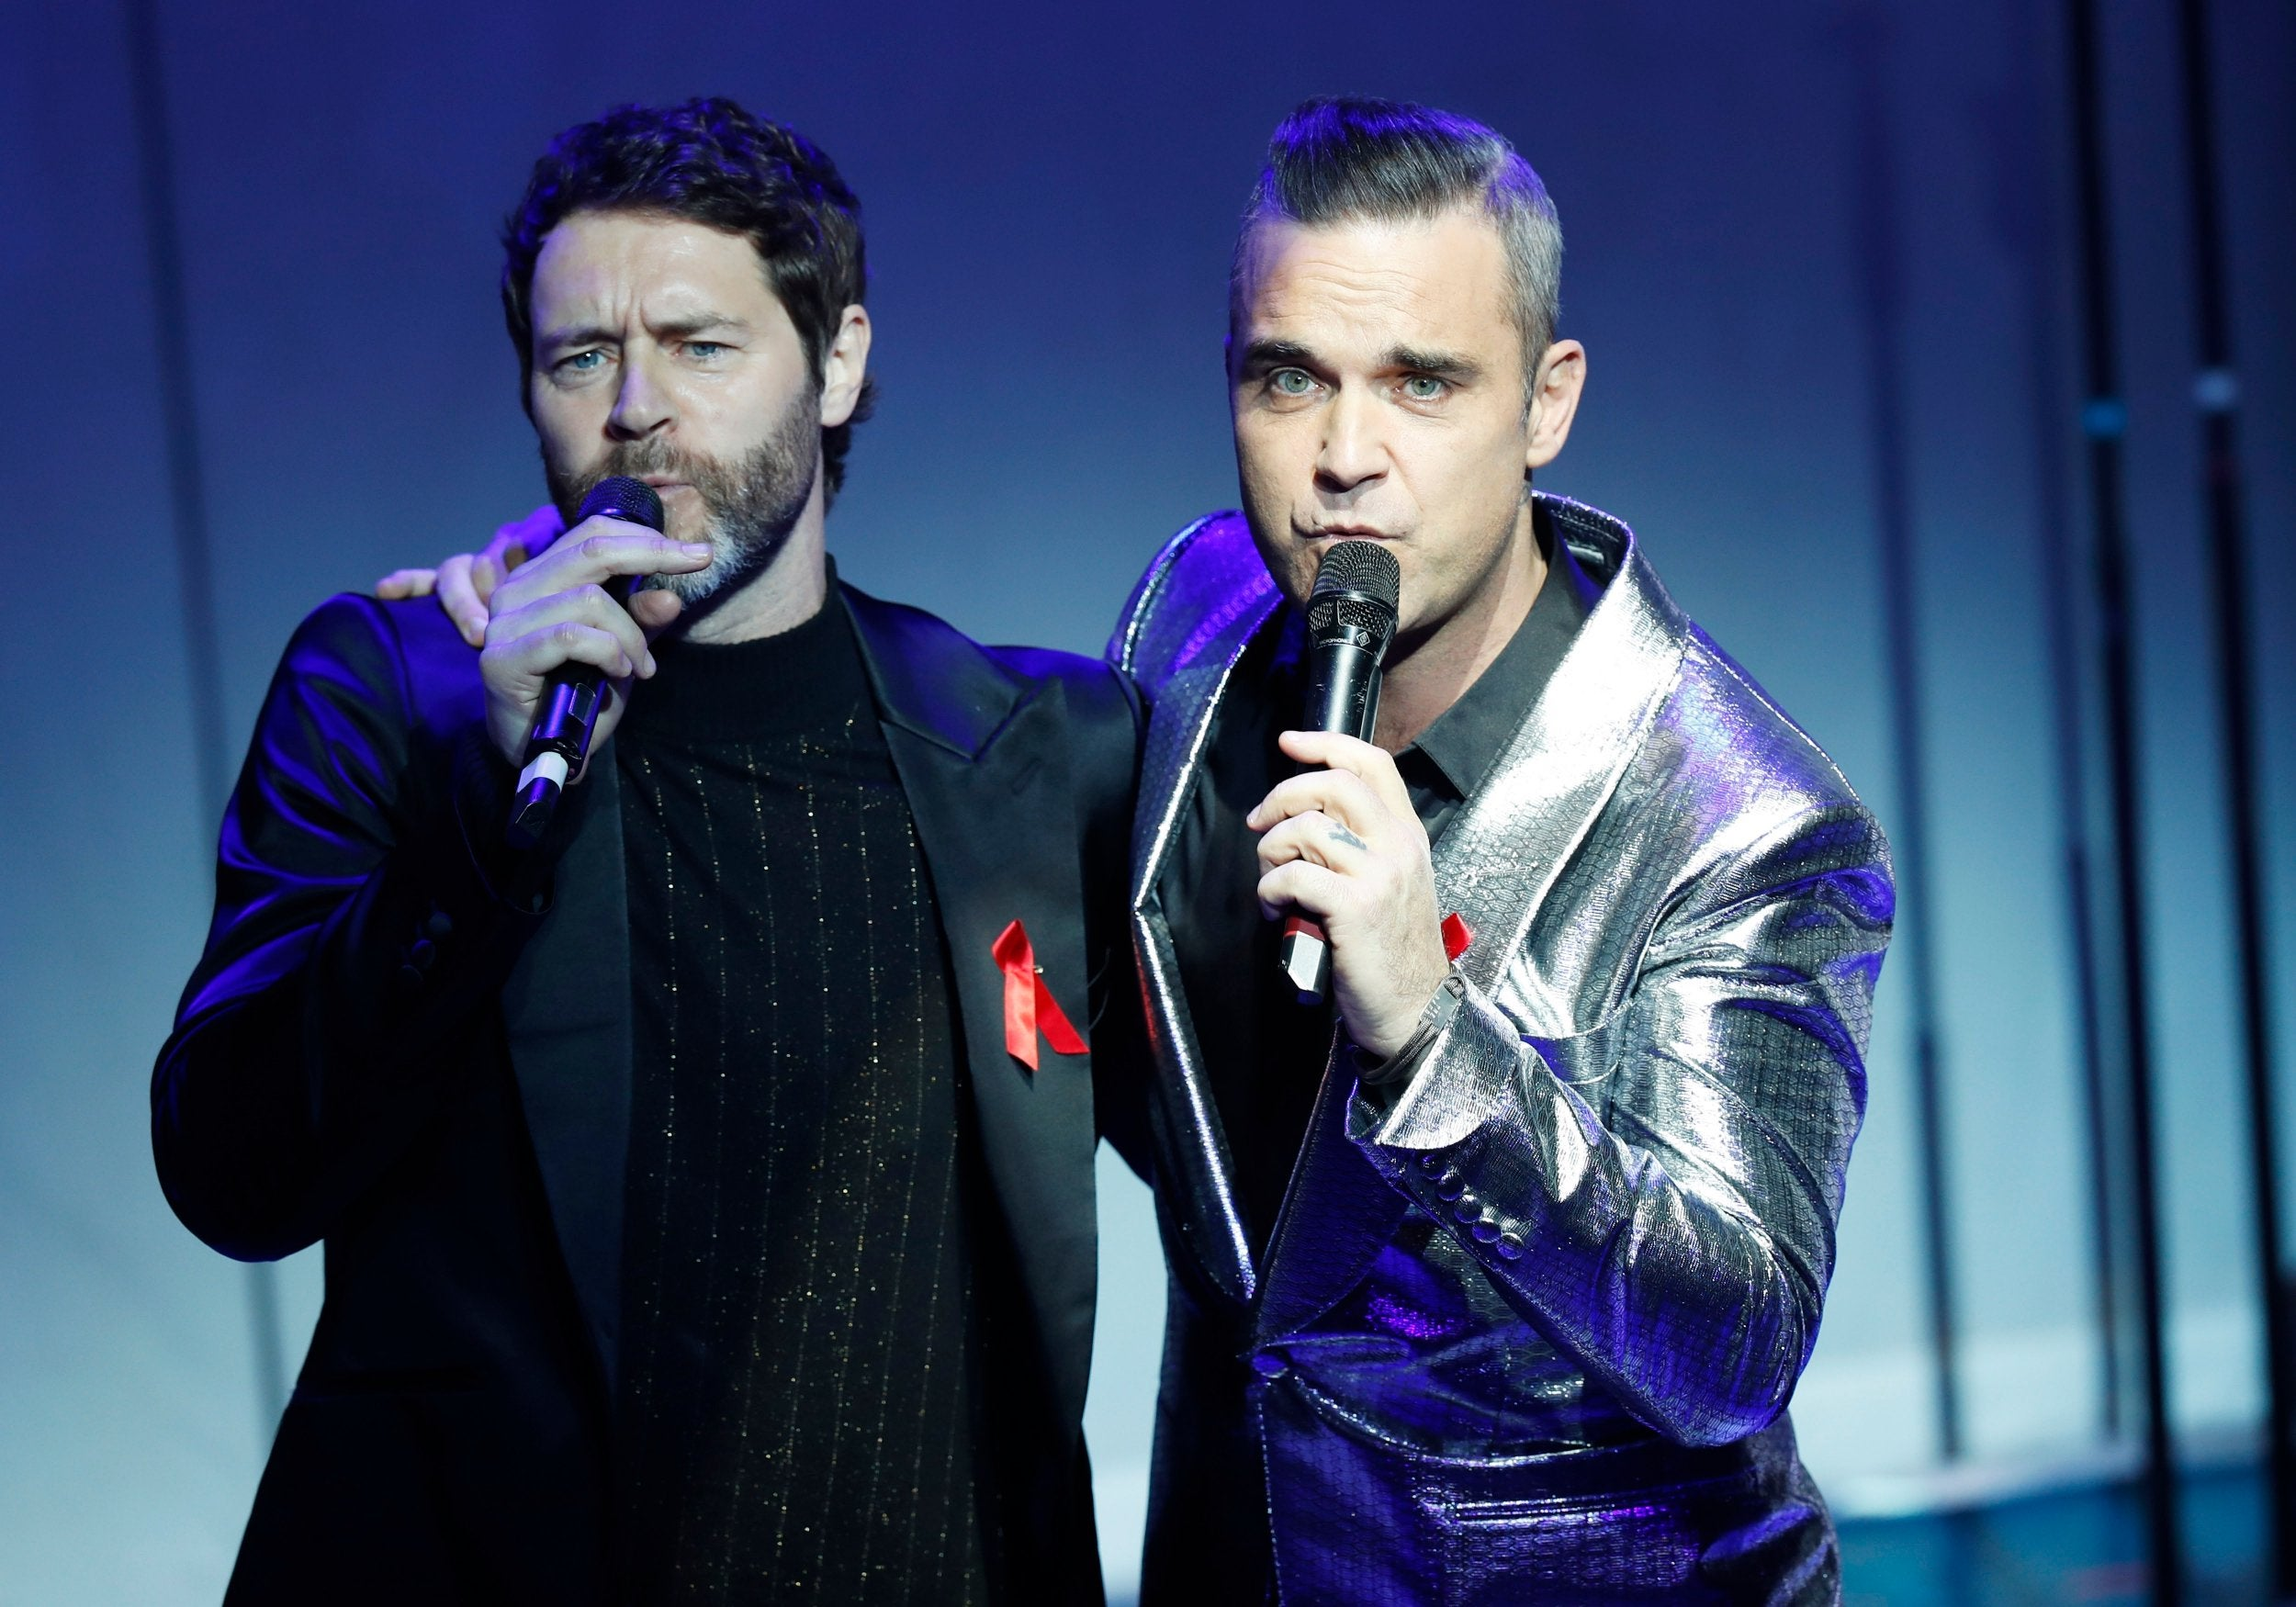 Take That gala lights our Christmas charity appeal fire and raises £500,000 #AIDSfree